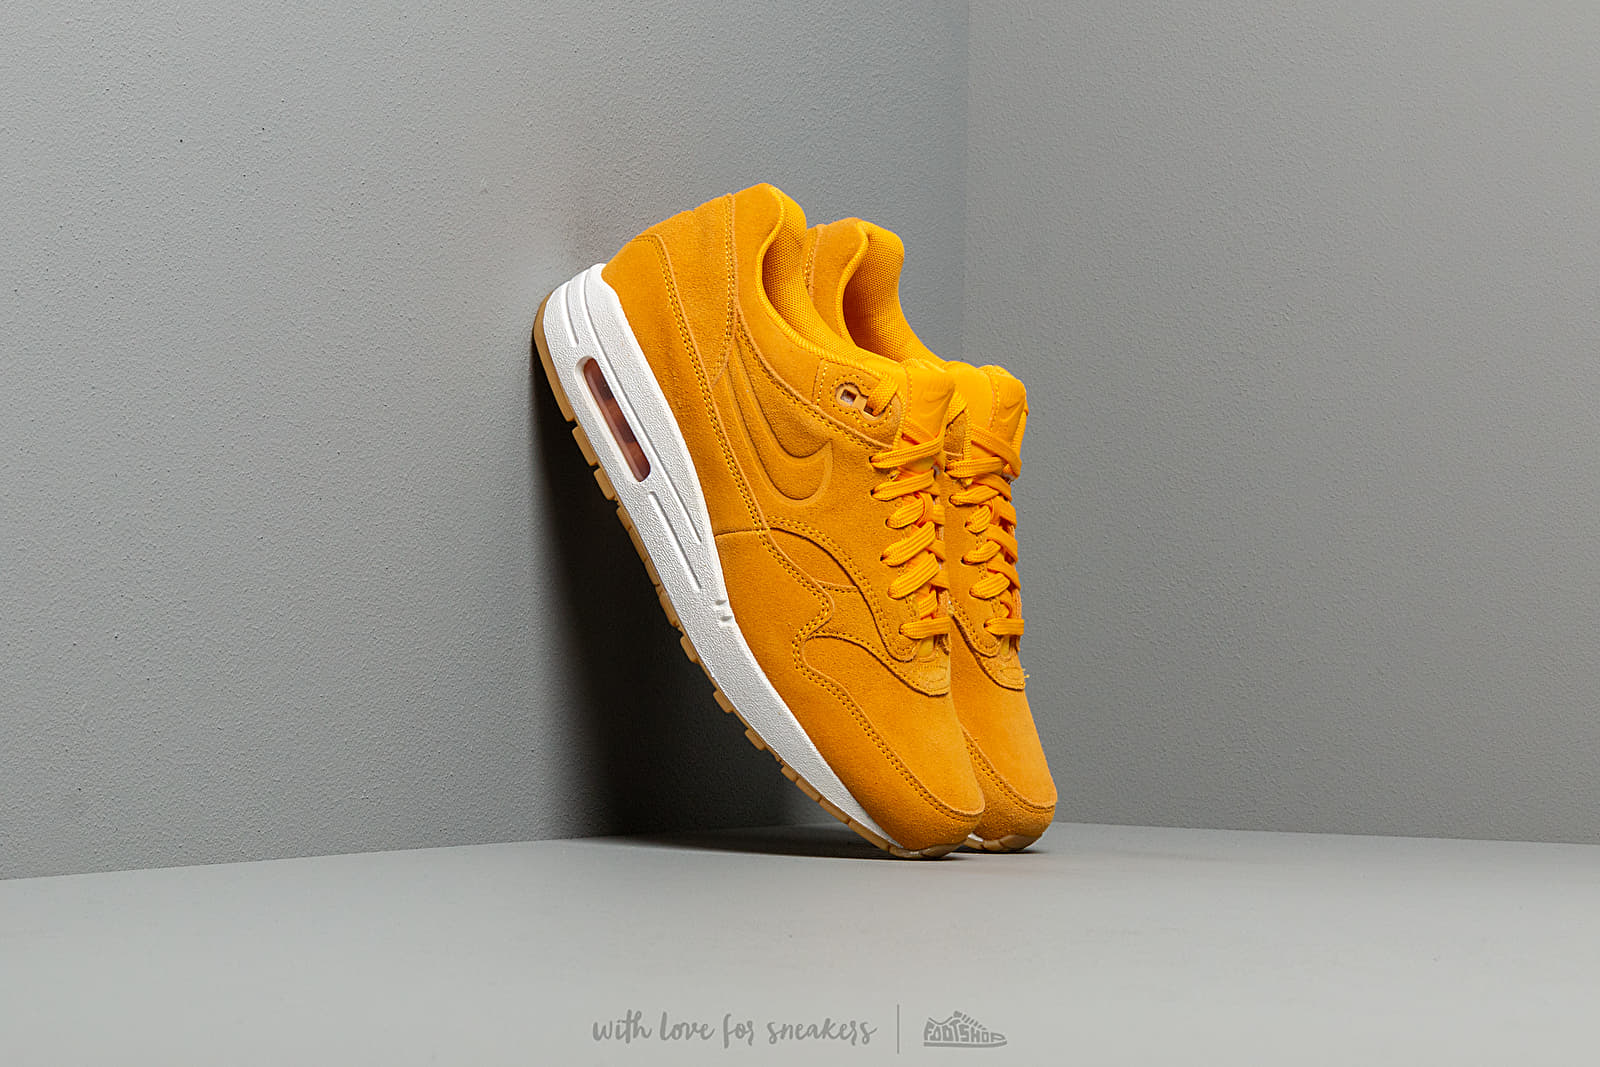 online retailer a5d3d da343 Nike Wmns Air Max 1 Premium University Gold  University Gold at a great  price 136